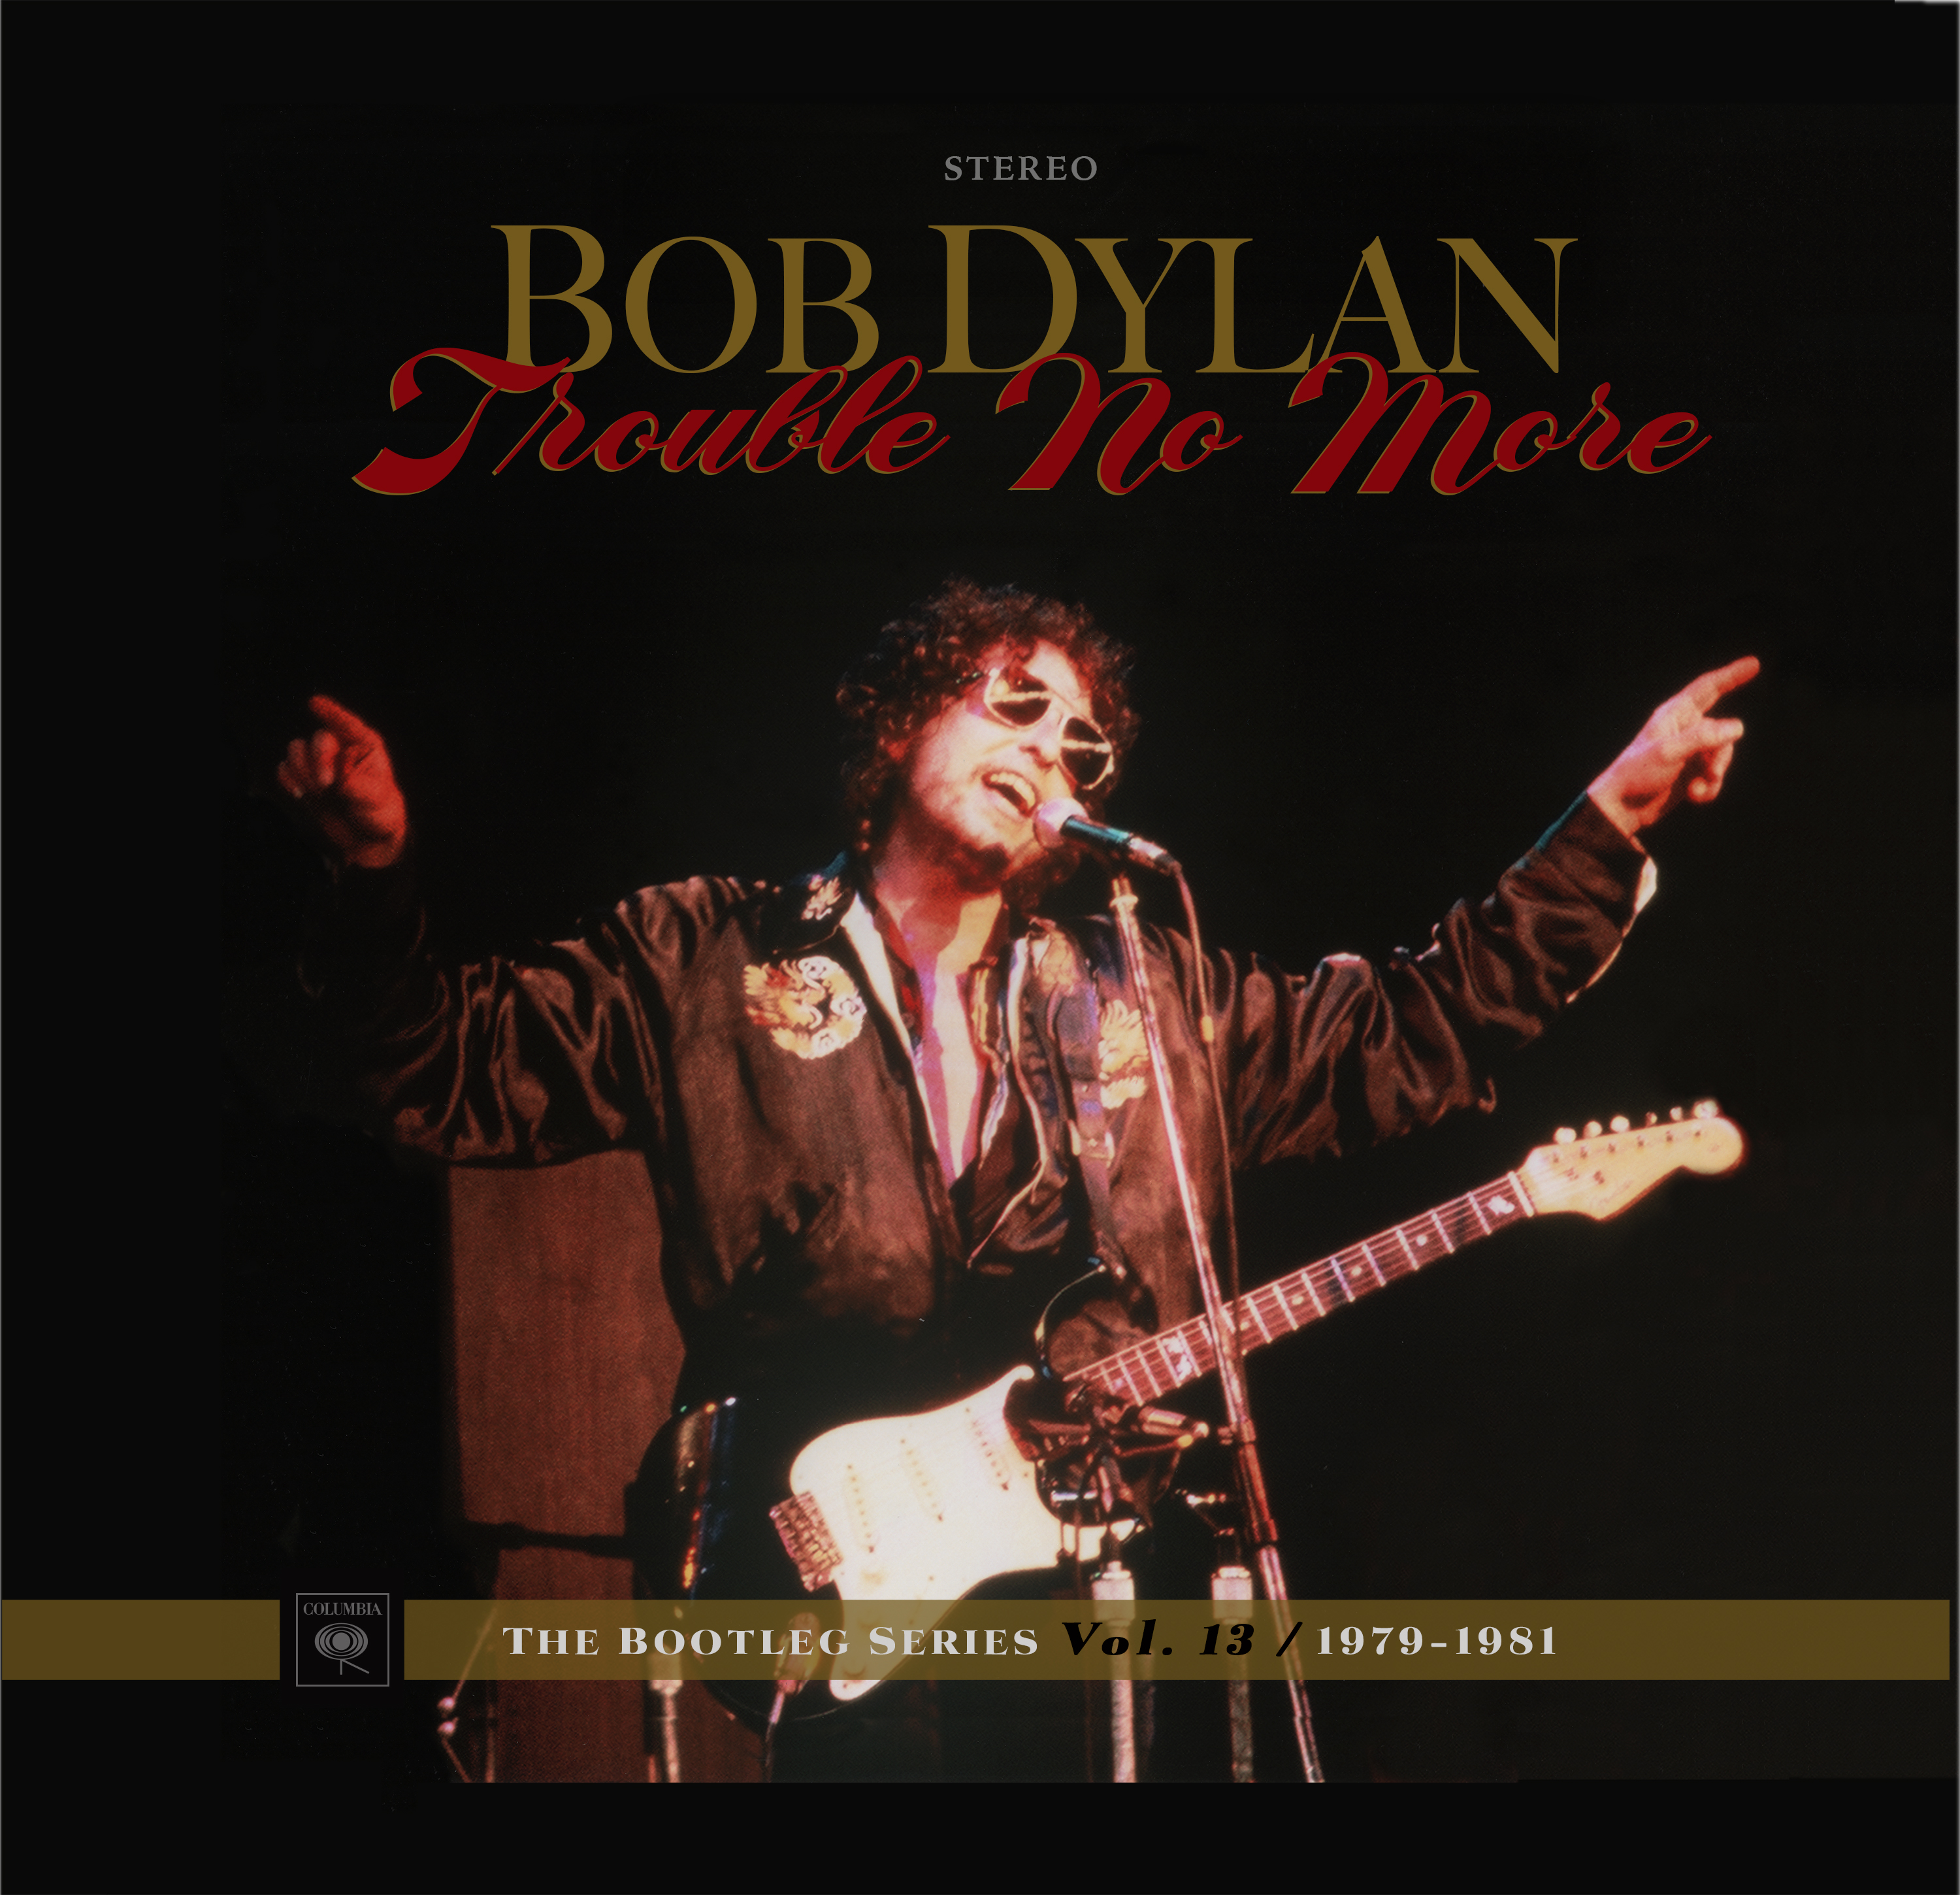 Bob Dylan, who will be at the Tower Theater this weekend, is the focus of a new box set that explores his Christian phase